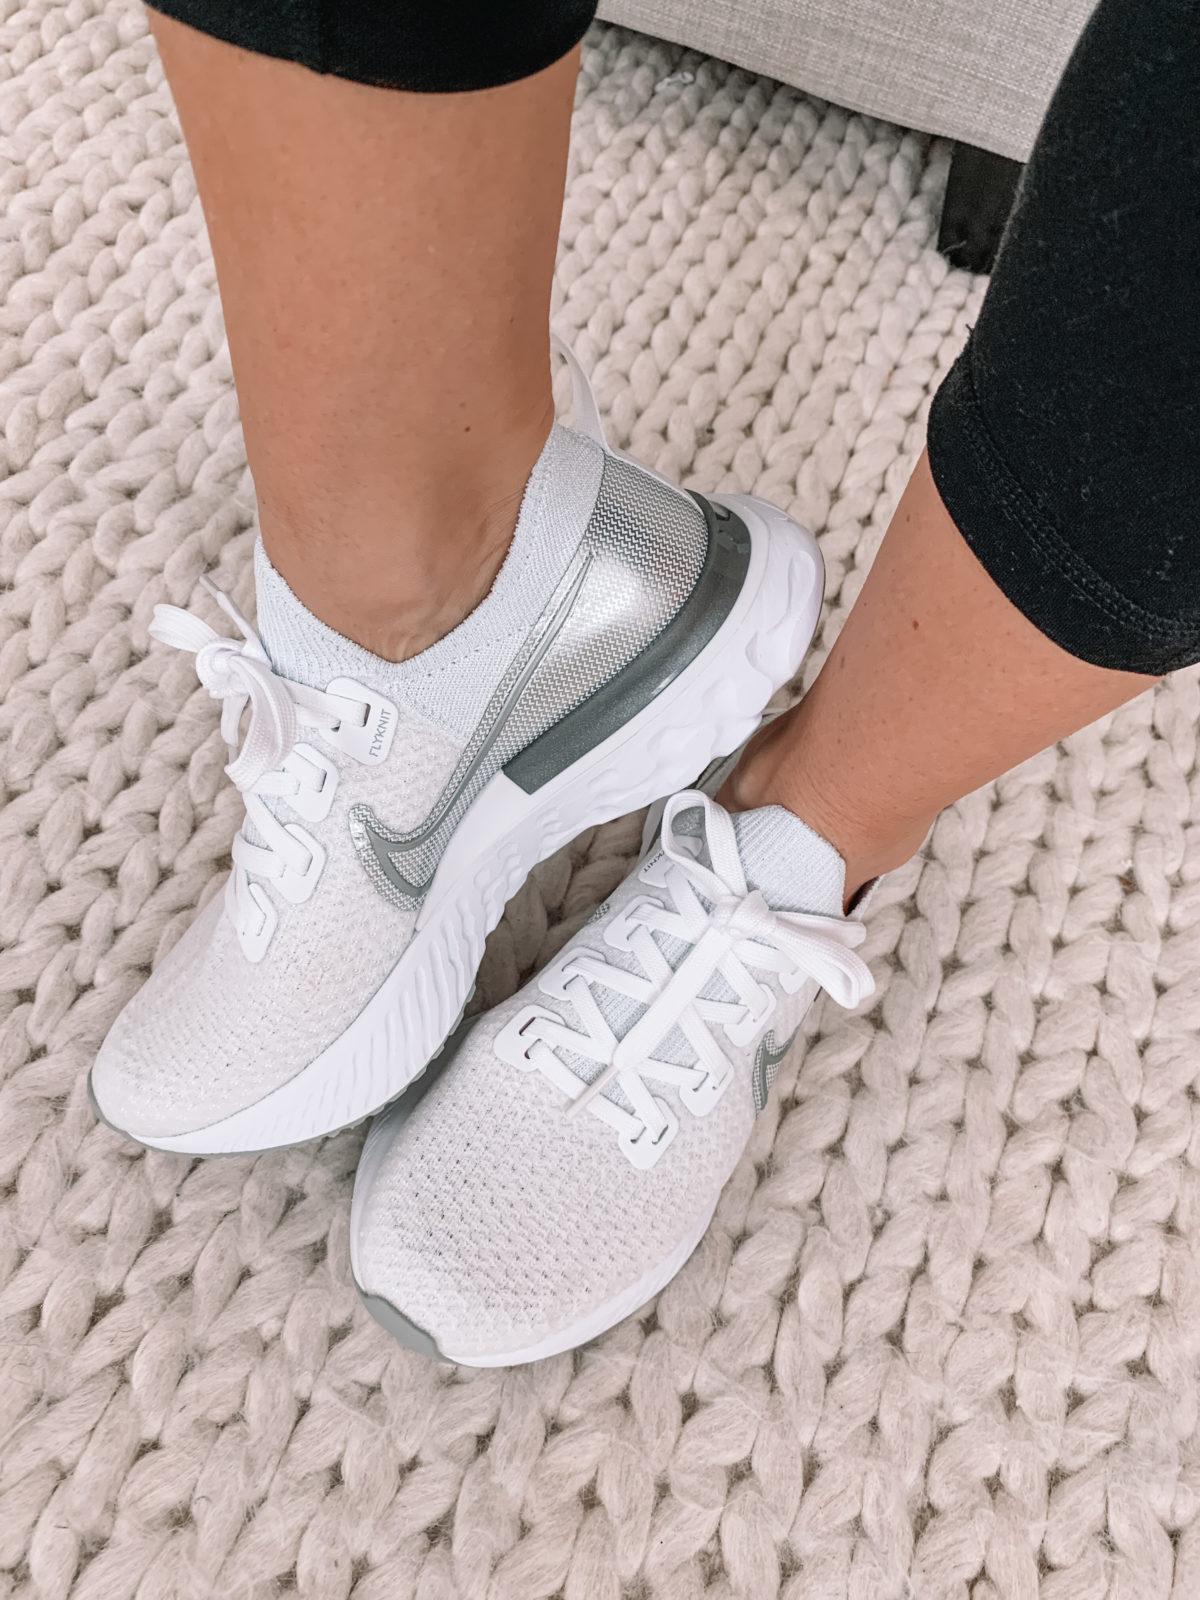 Style a Friend, Nike Sneakers